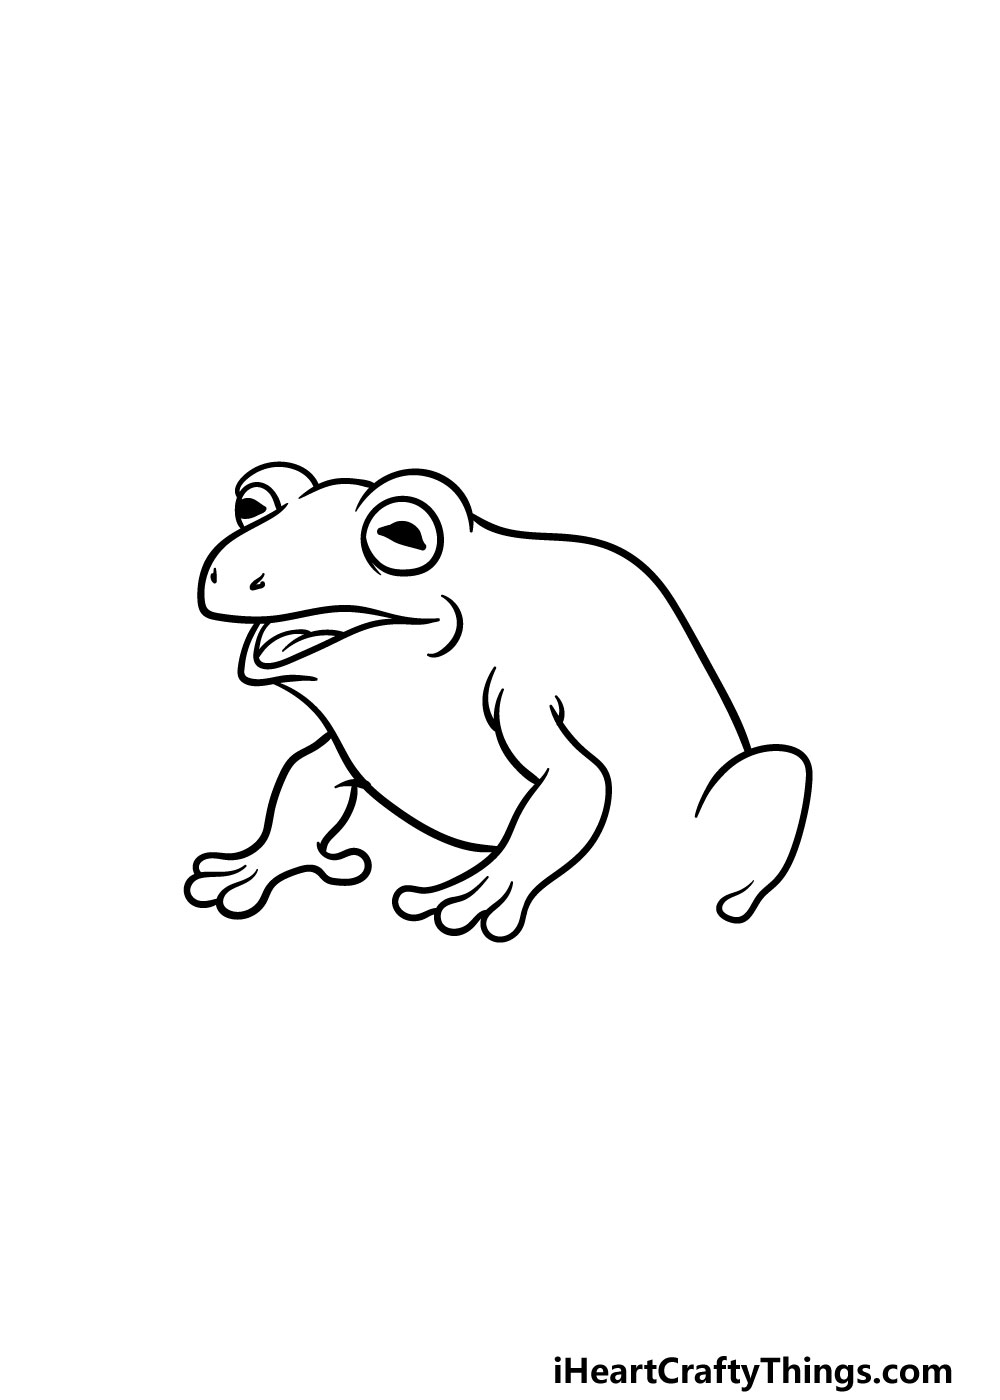 drawing a toad step 4